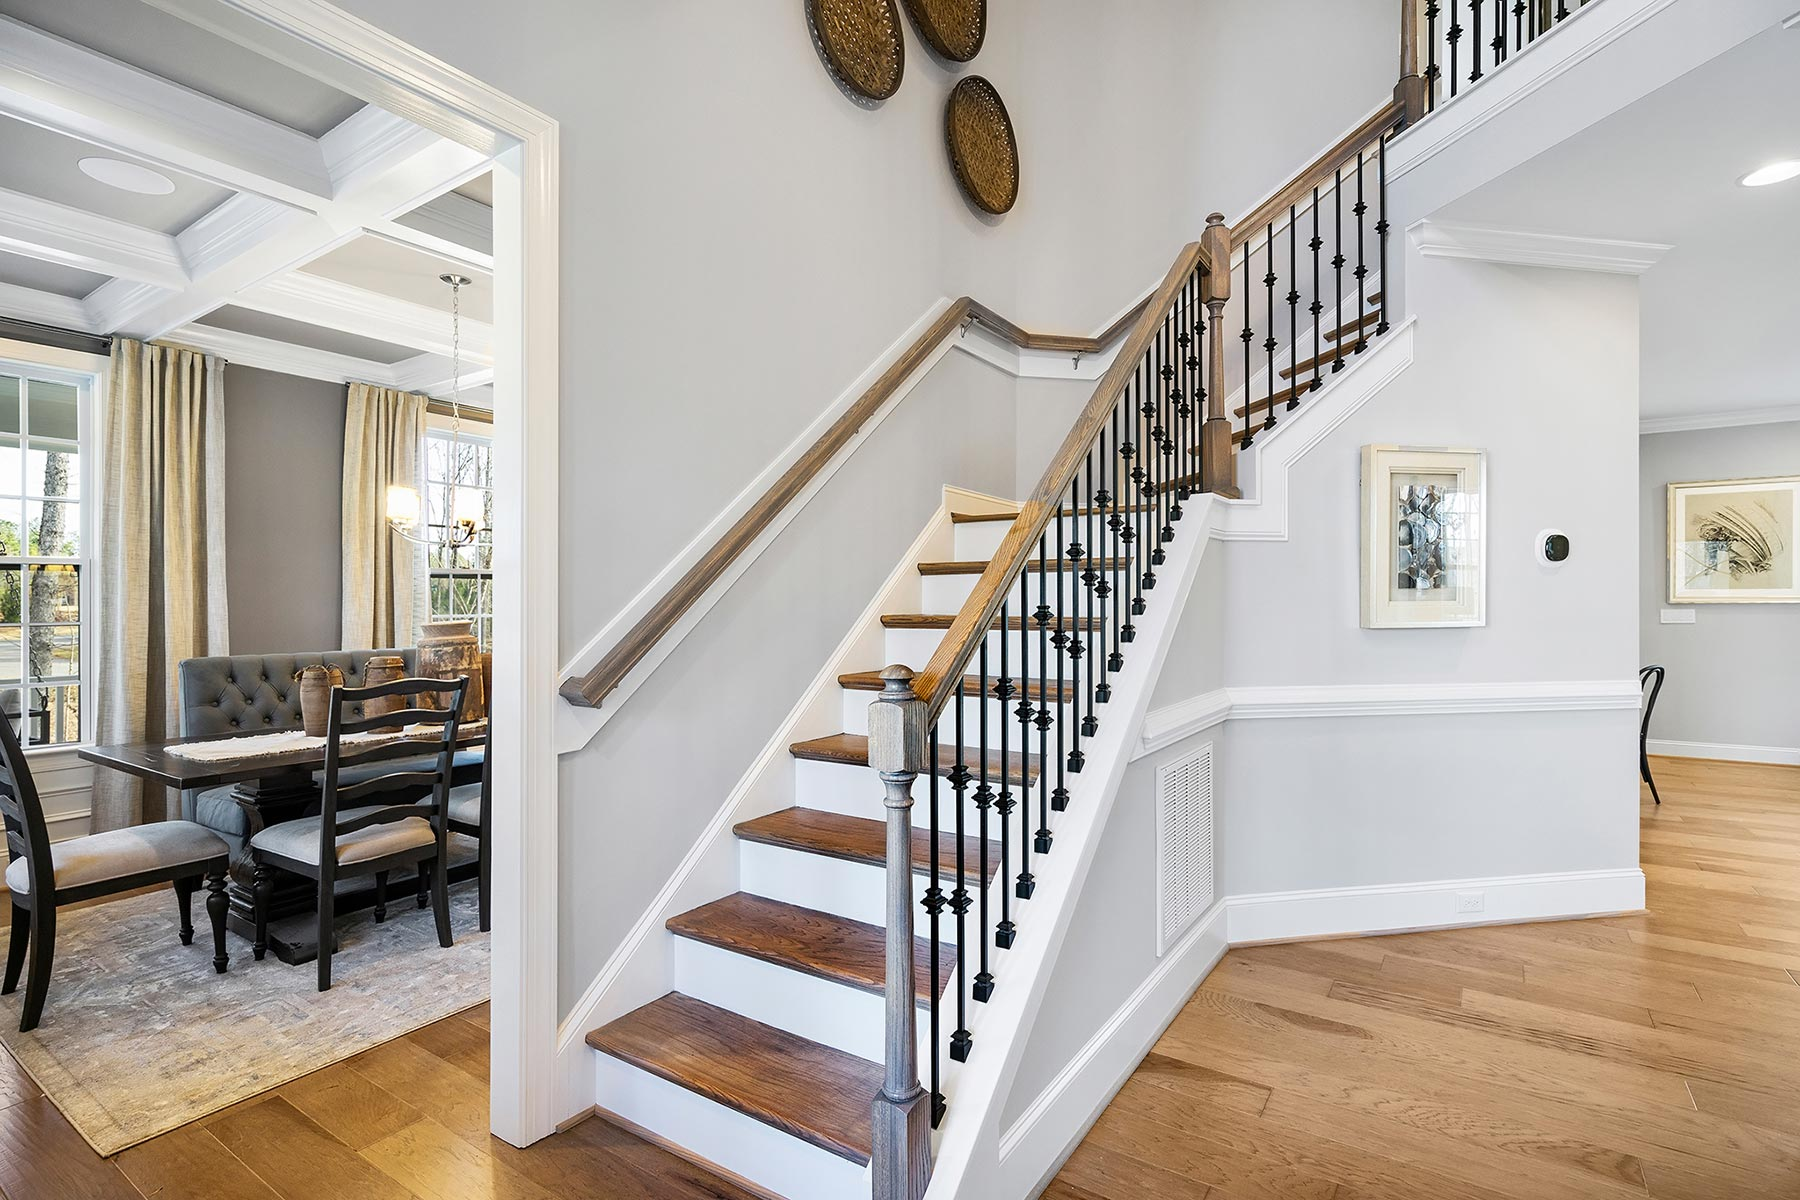 Edenton Plan Stairs at Ballentine Place in Holly Springs North Carolina by Mattamy Homes